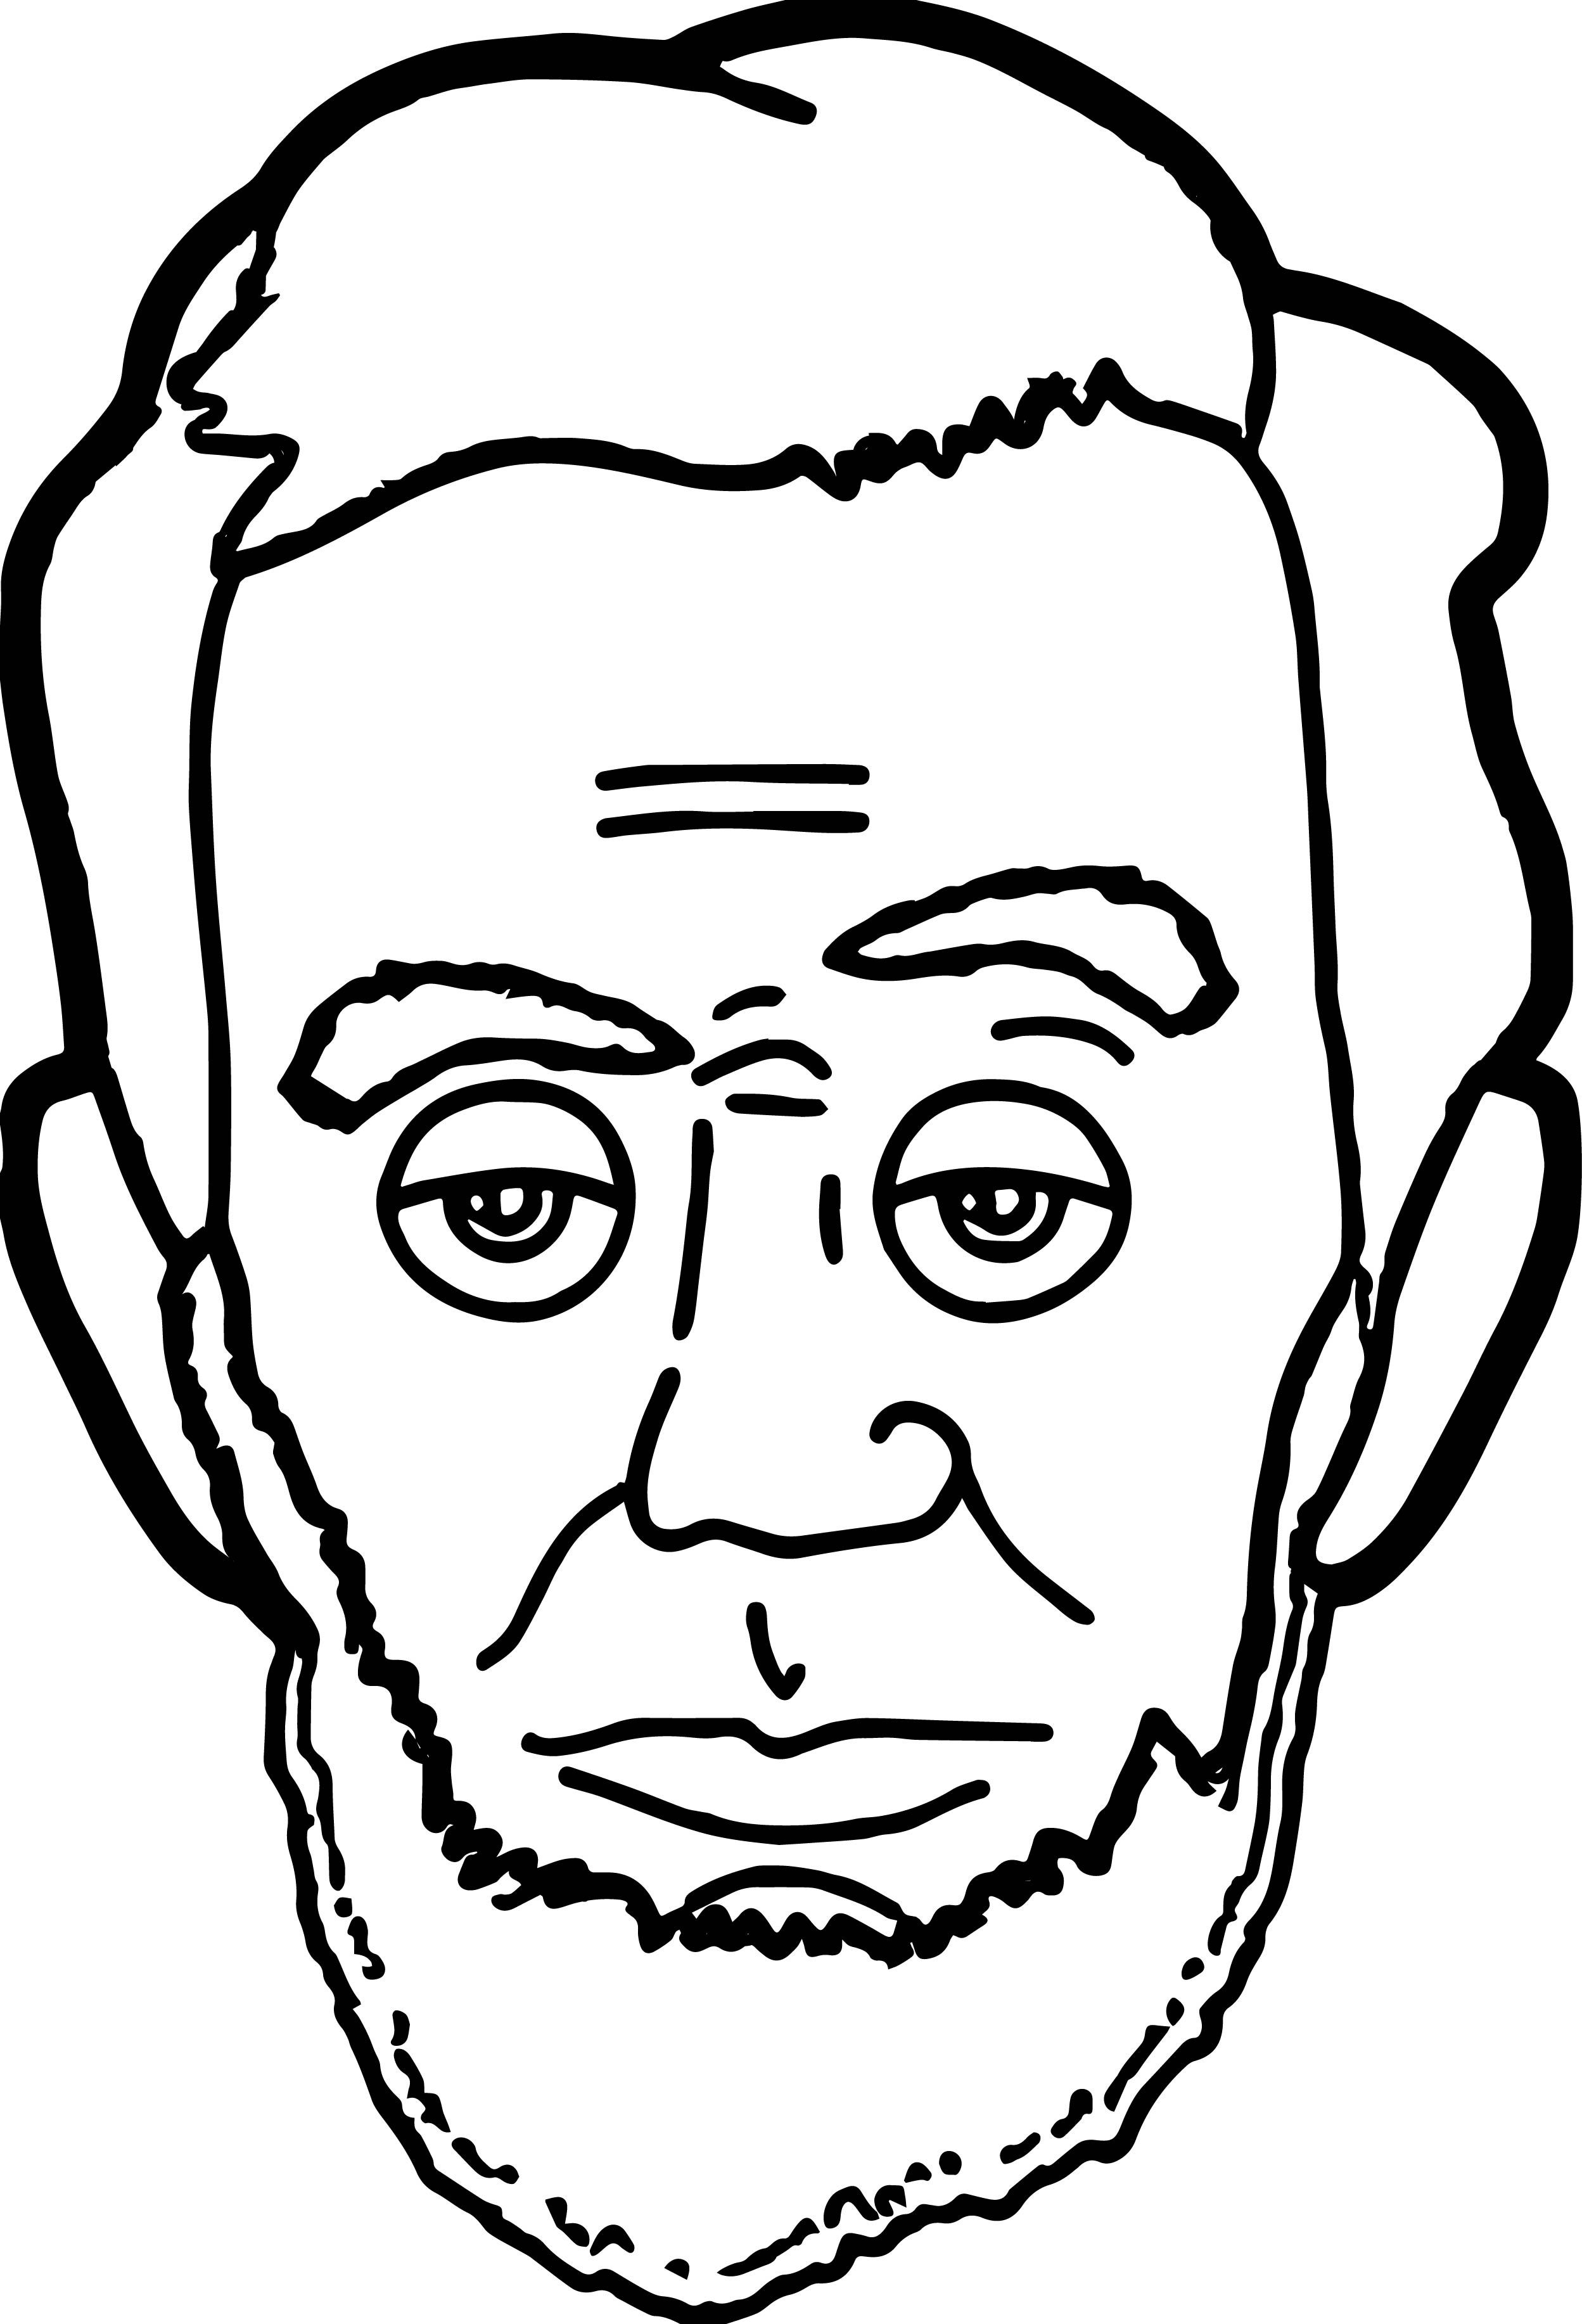 Nice Abraham Lincoln President Face Coloring Page Transformers Coloring Pages Cartoon Coloring Pages Monster Coloring Pages